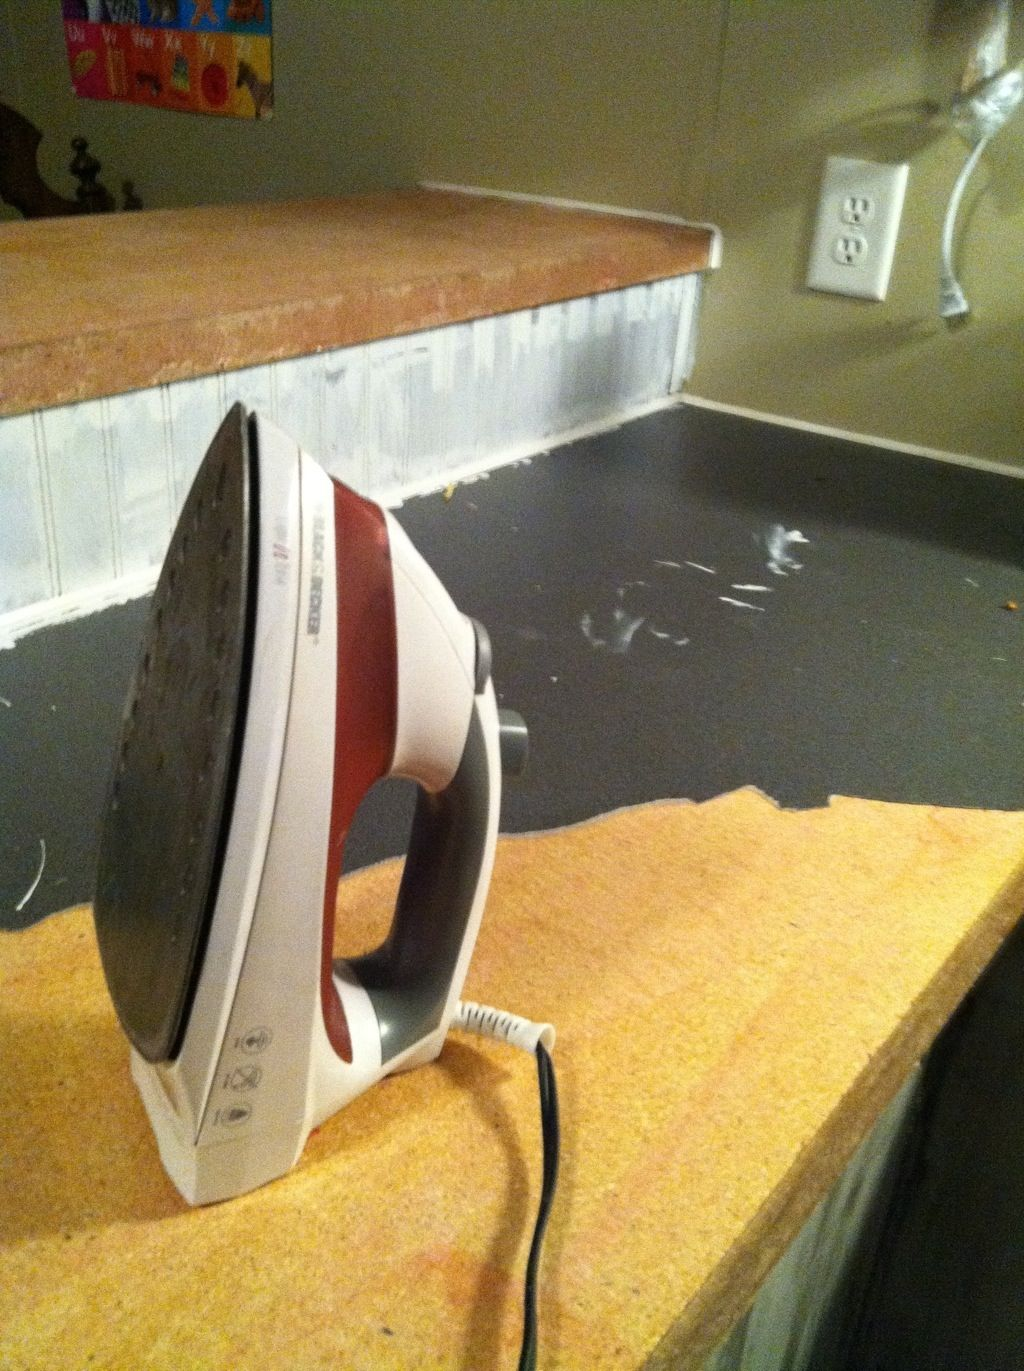 How To Remove Laminate From Counter Tops Without A Chisel The